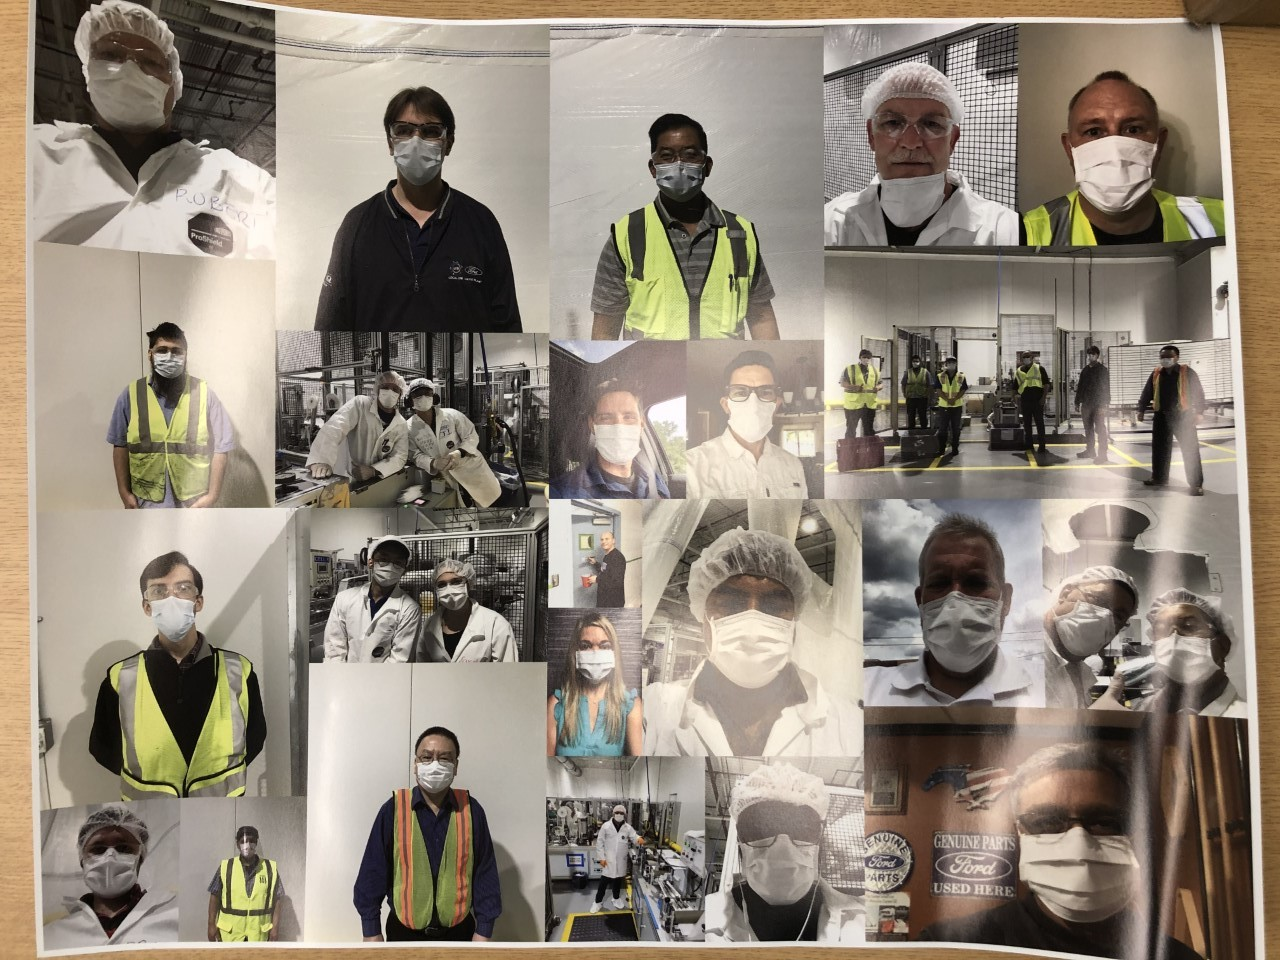 Electro-Matic and Ford Motor Team Up to Manufacture and Distribute PPE Equipment